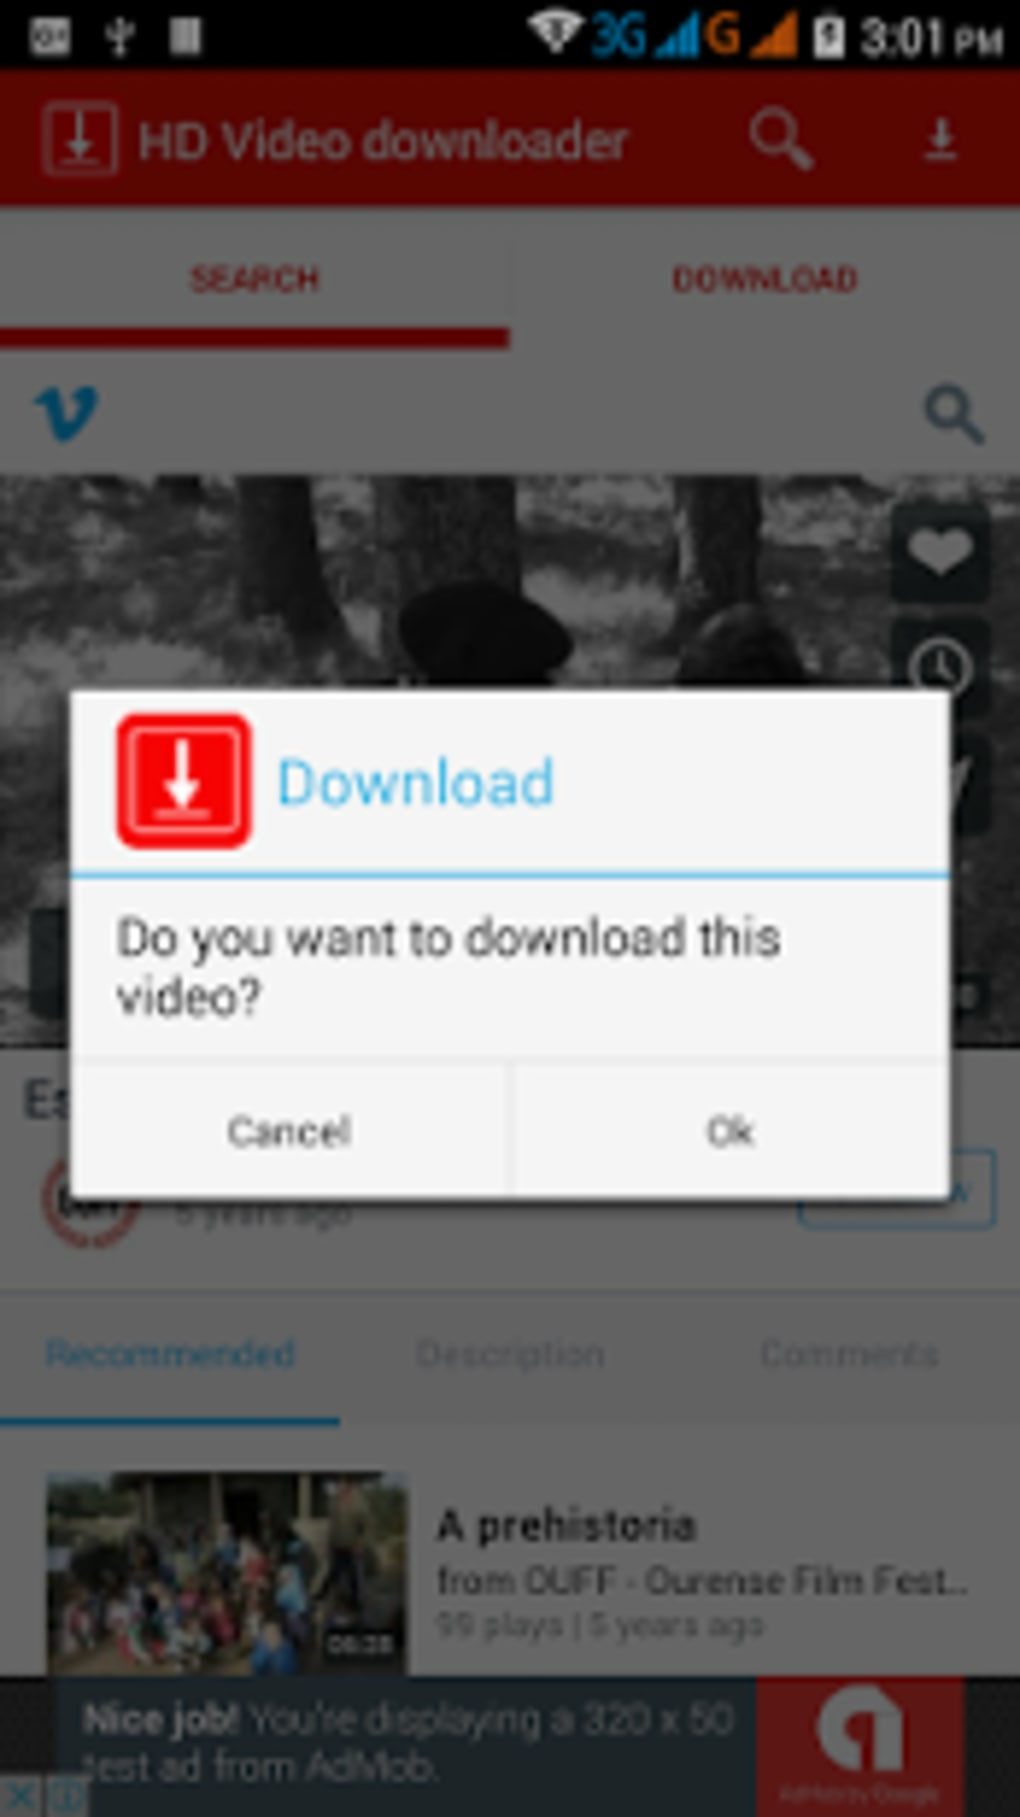 HD Video downloader free for Android - Download